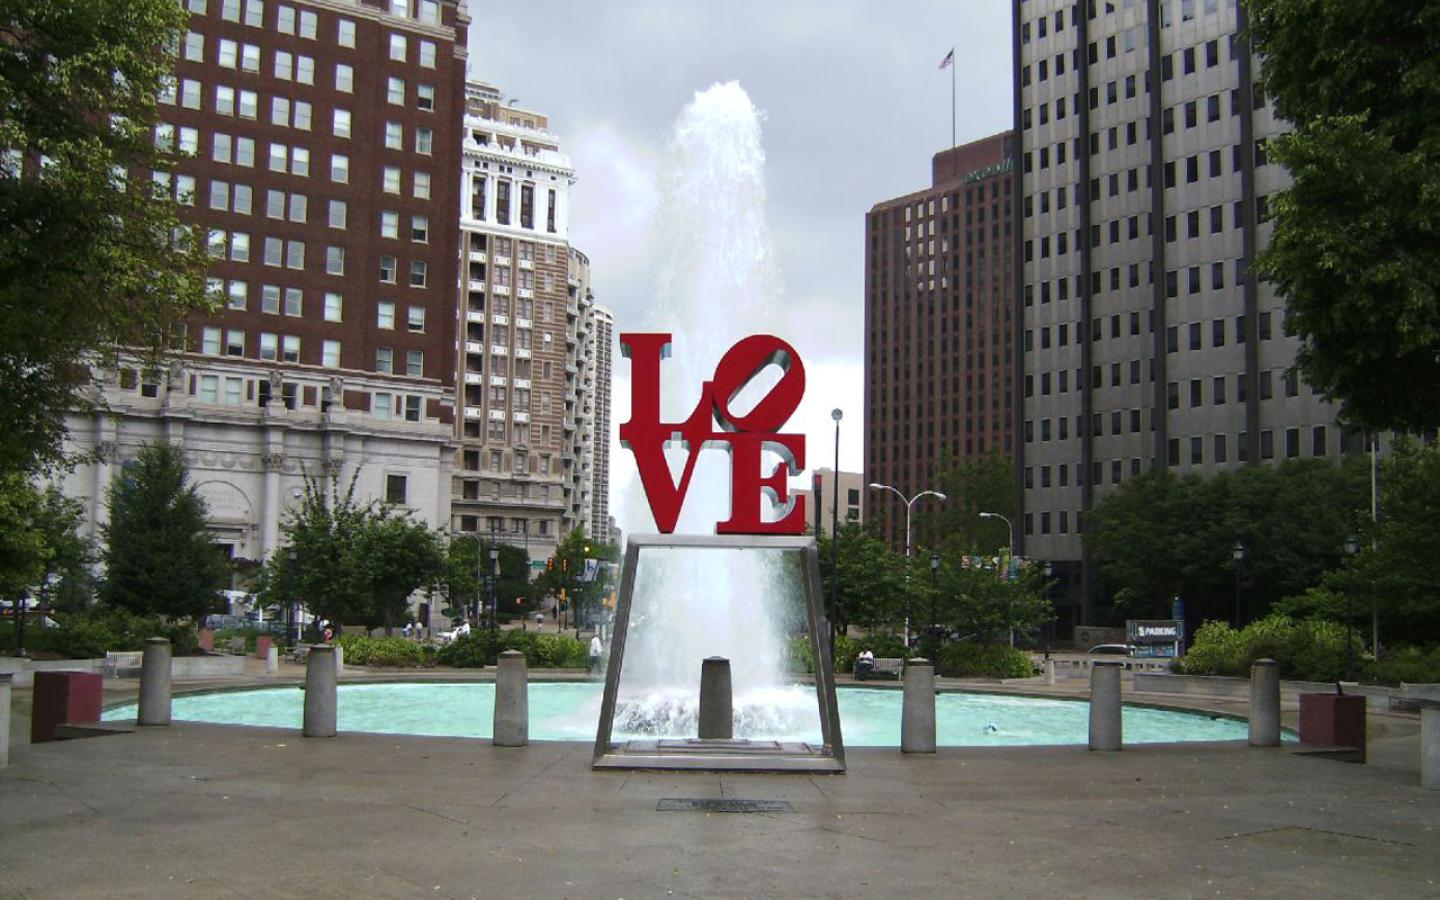 Philadelphia - Love Park Wallpaper #1 1440 x 900